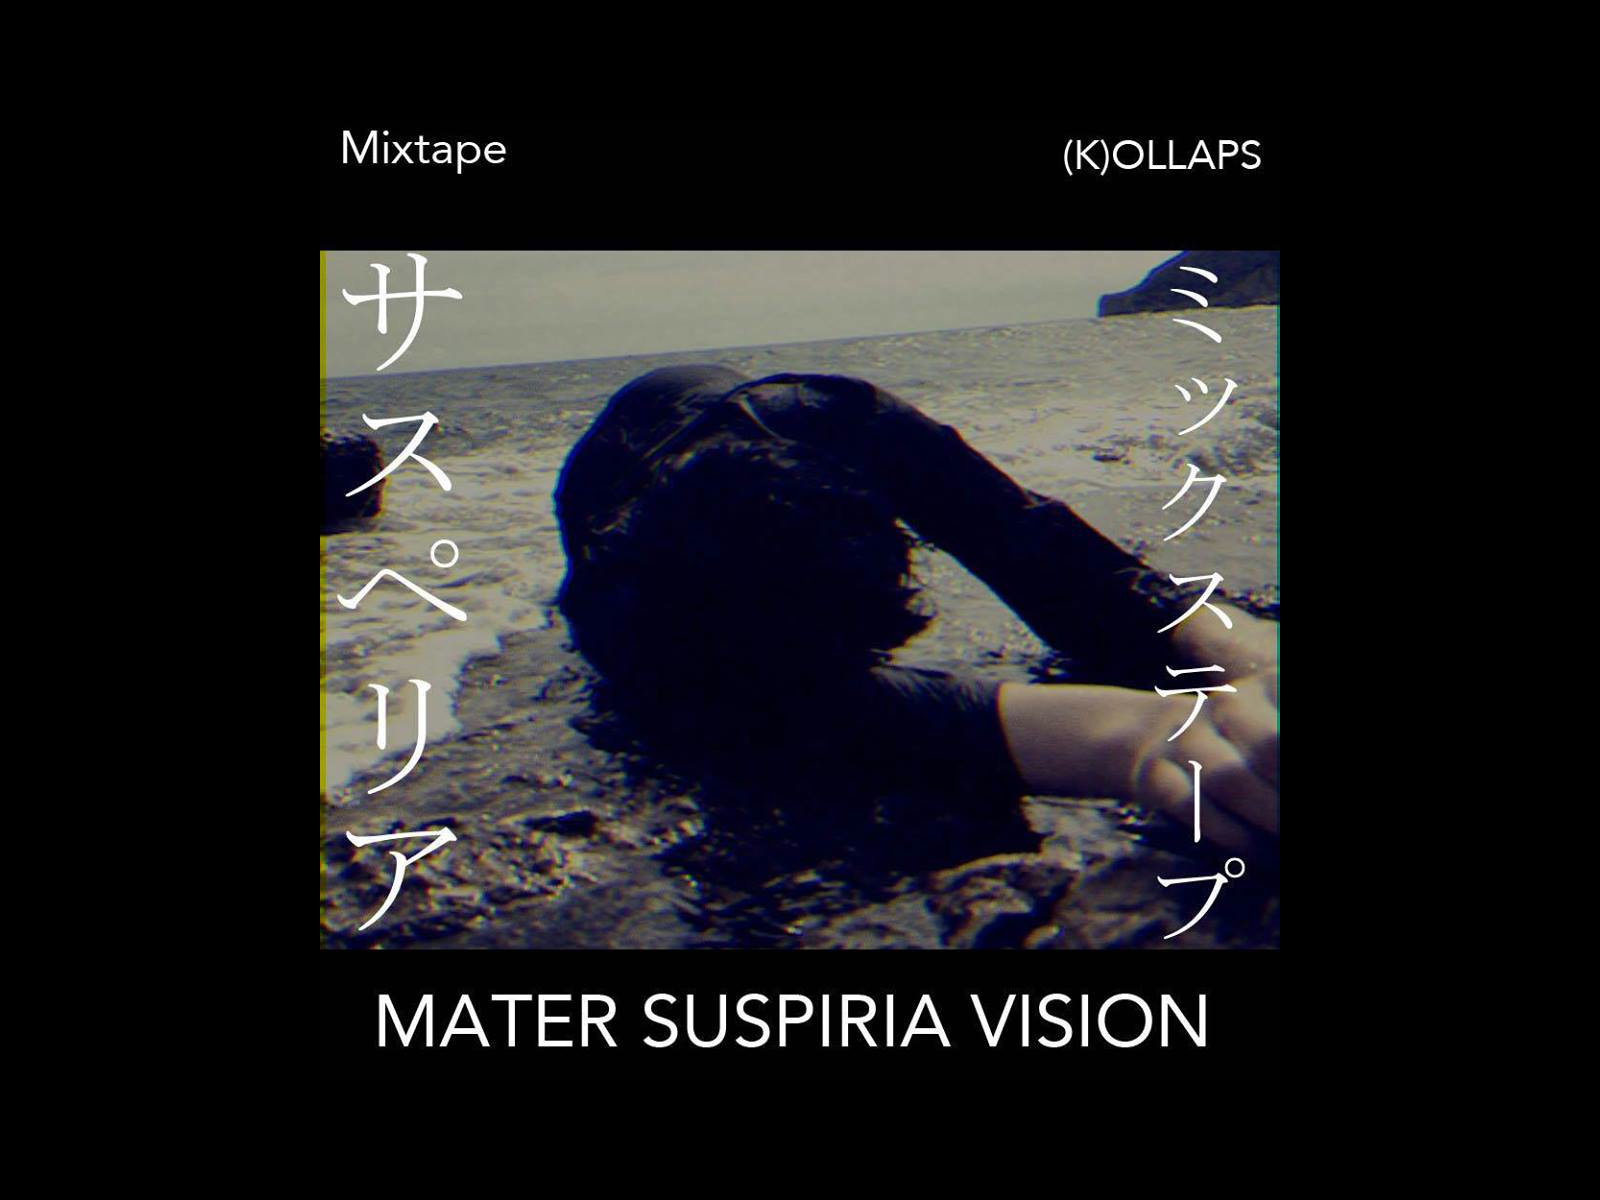 MATER SUSPIRIA VISION - Exclusive Mixtape for (K)OLLAPS JAPAN